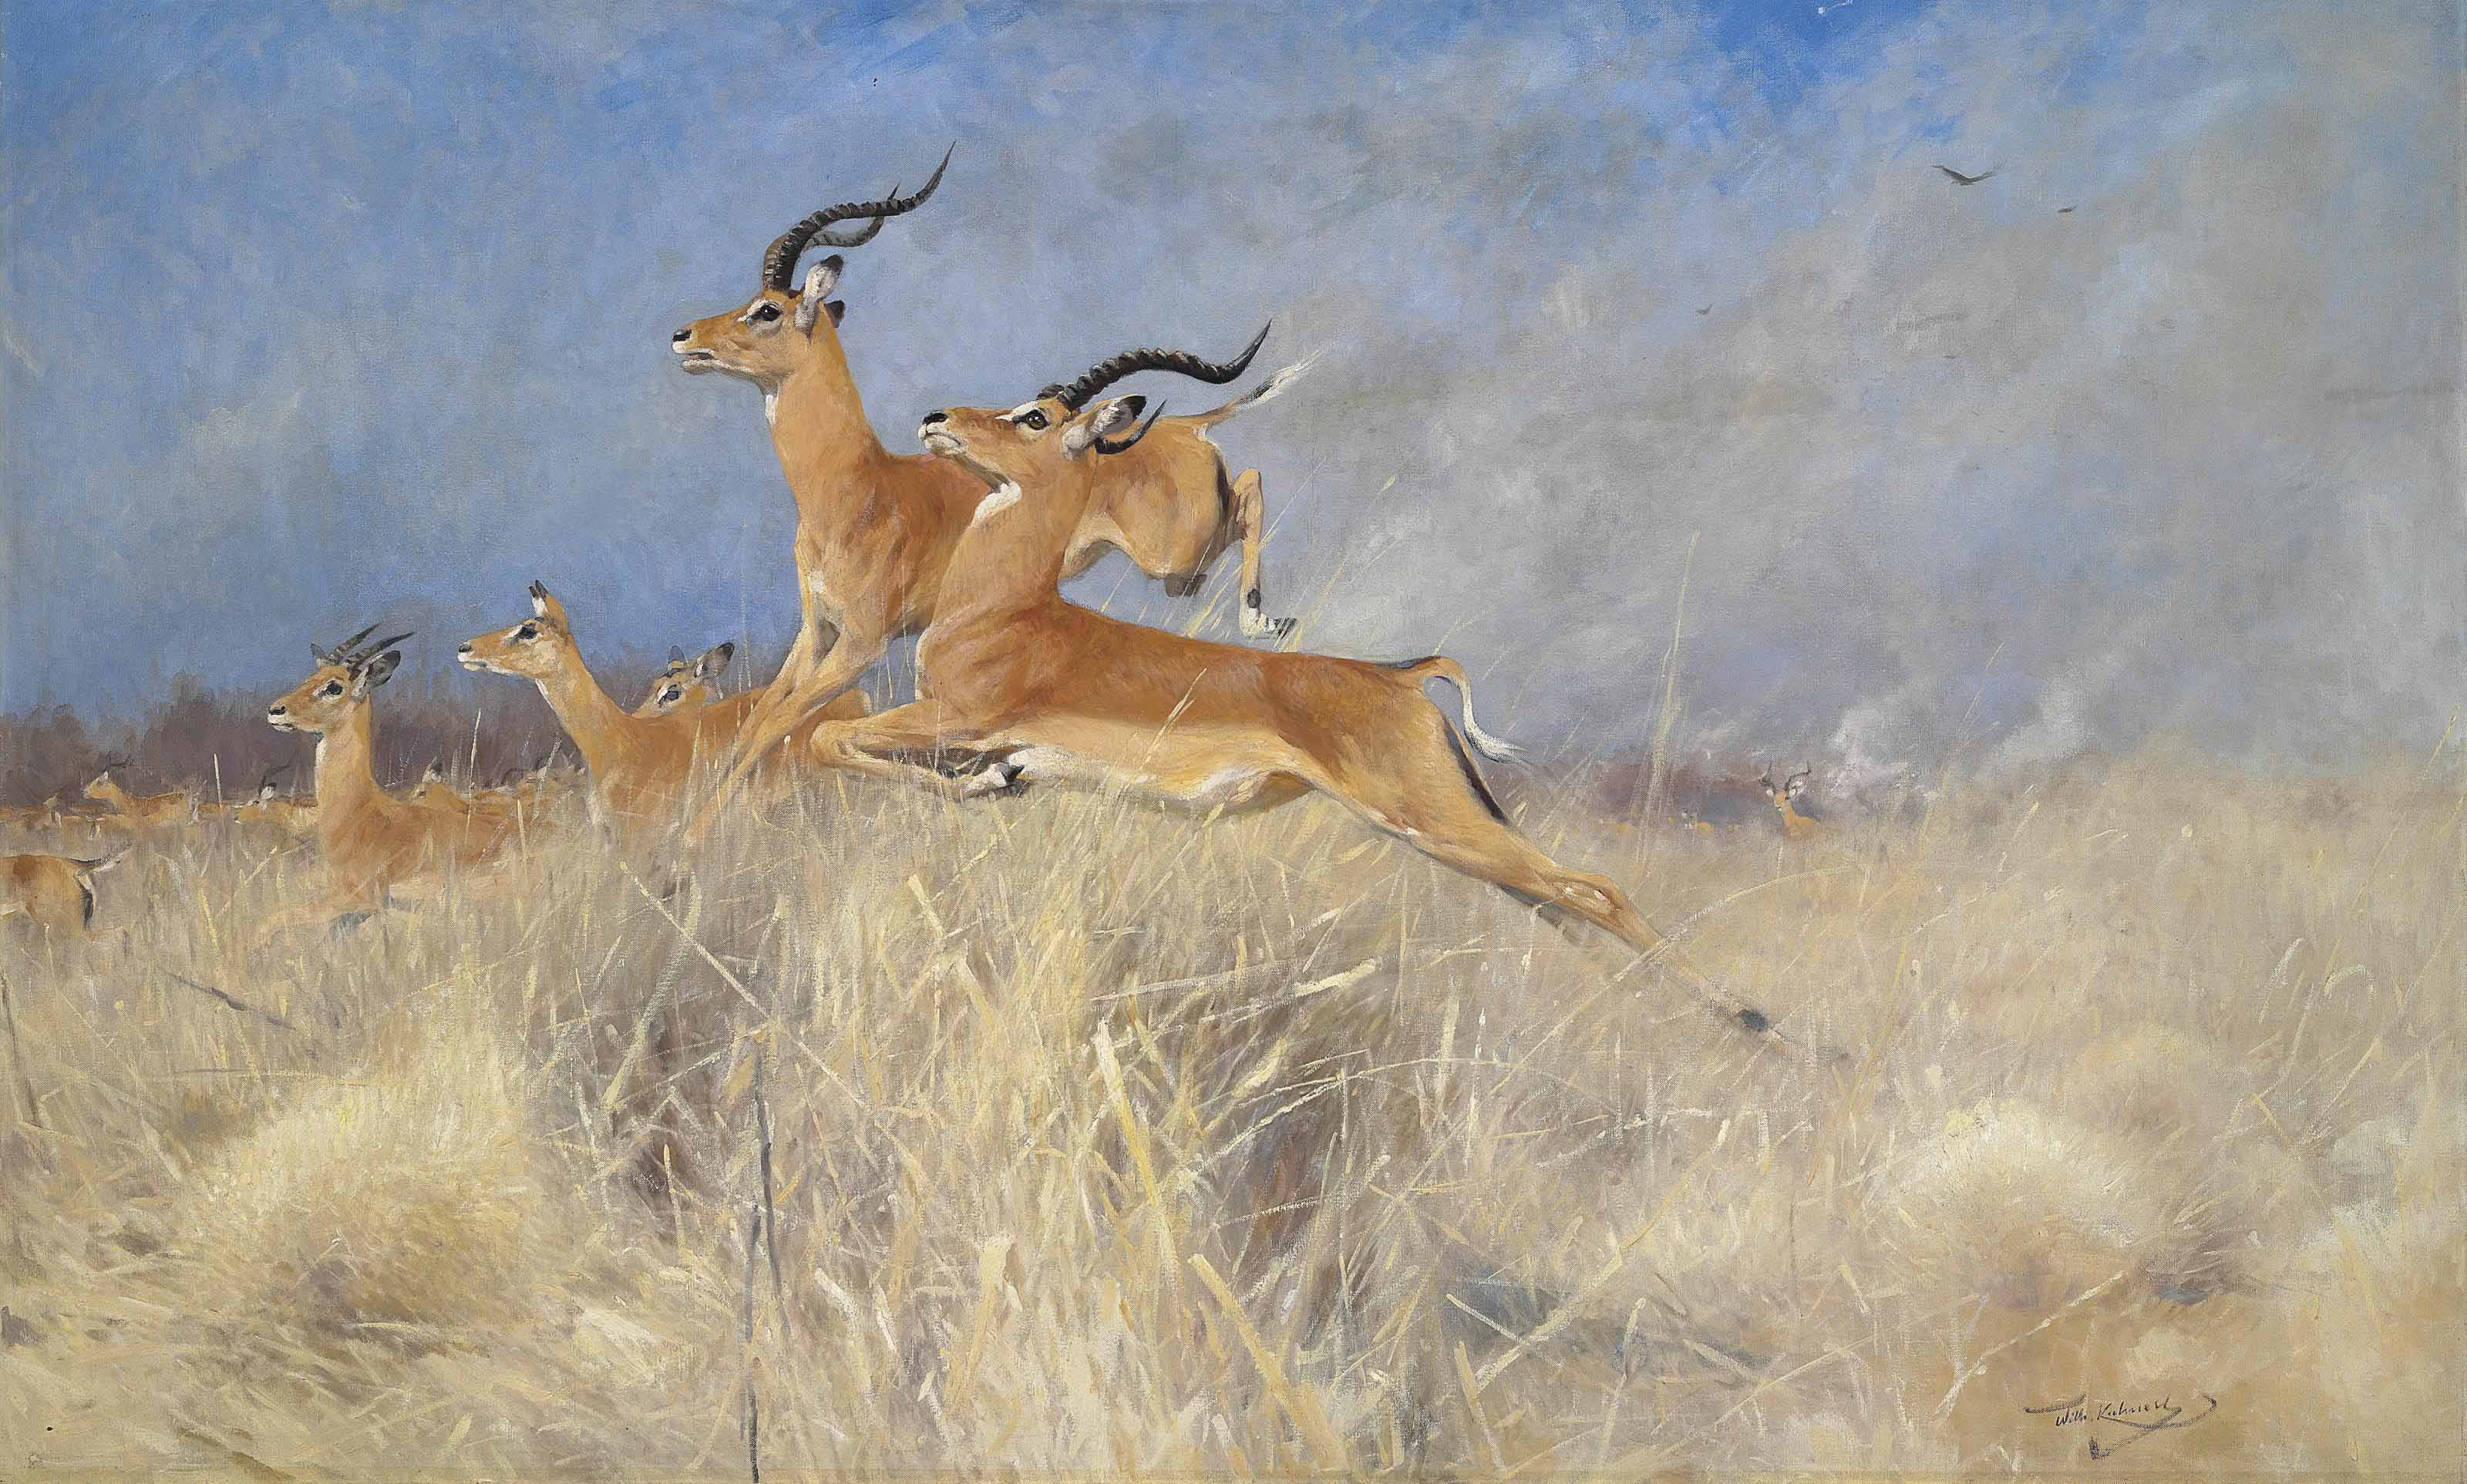 Swalla antelope in flight